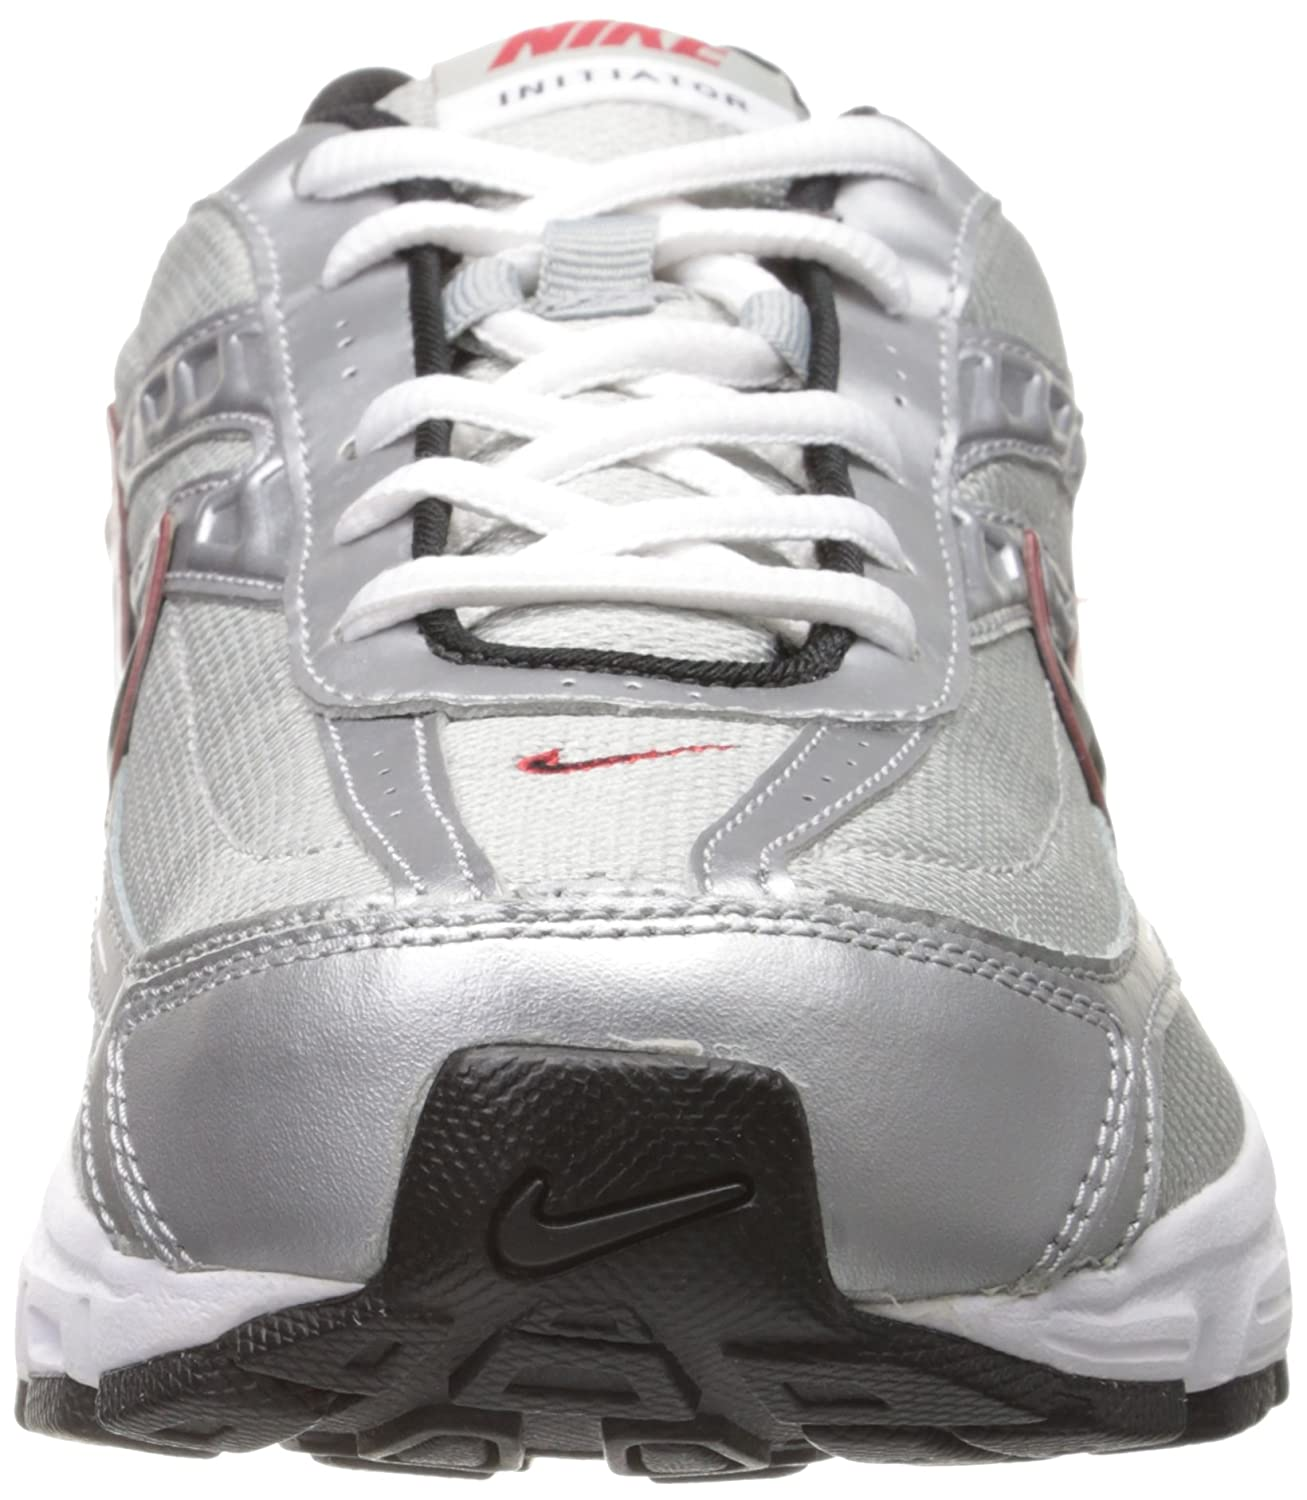 Nike Men s Initiator Competition Running Shoes  Amazon.co.uk  Shoes   Bags f84b0fe40